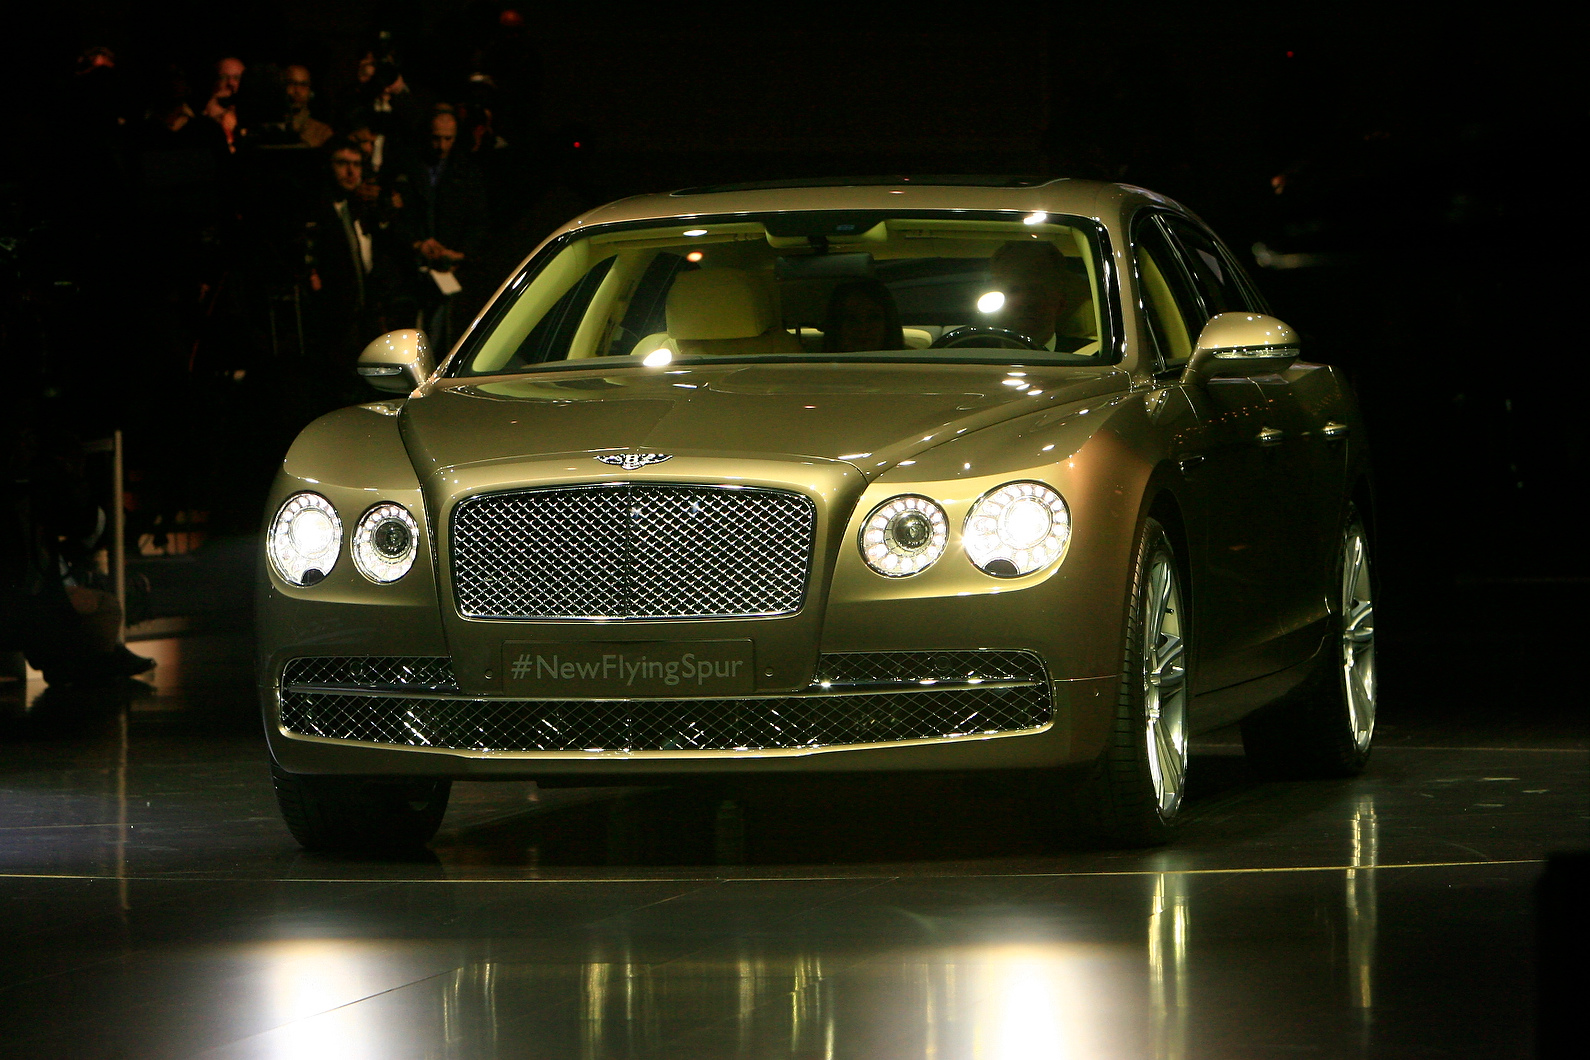 Bentley claims to have increased the performance of the new Continental Flying Spur and improved refinement.